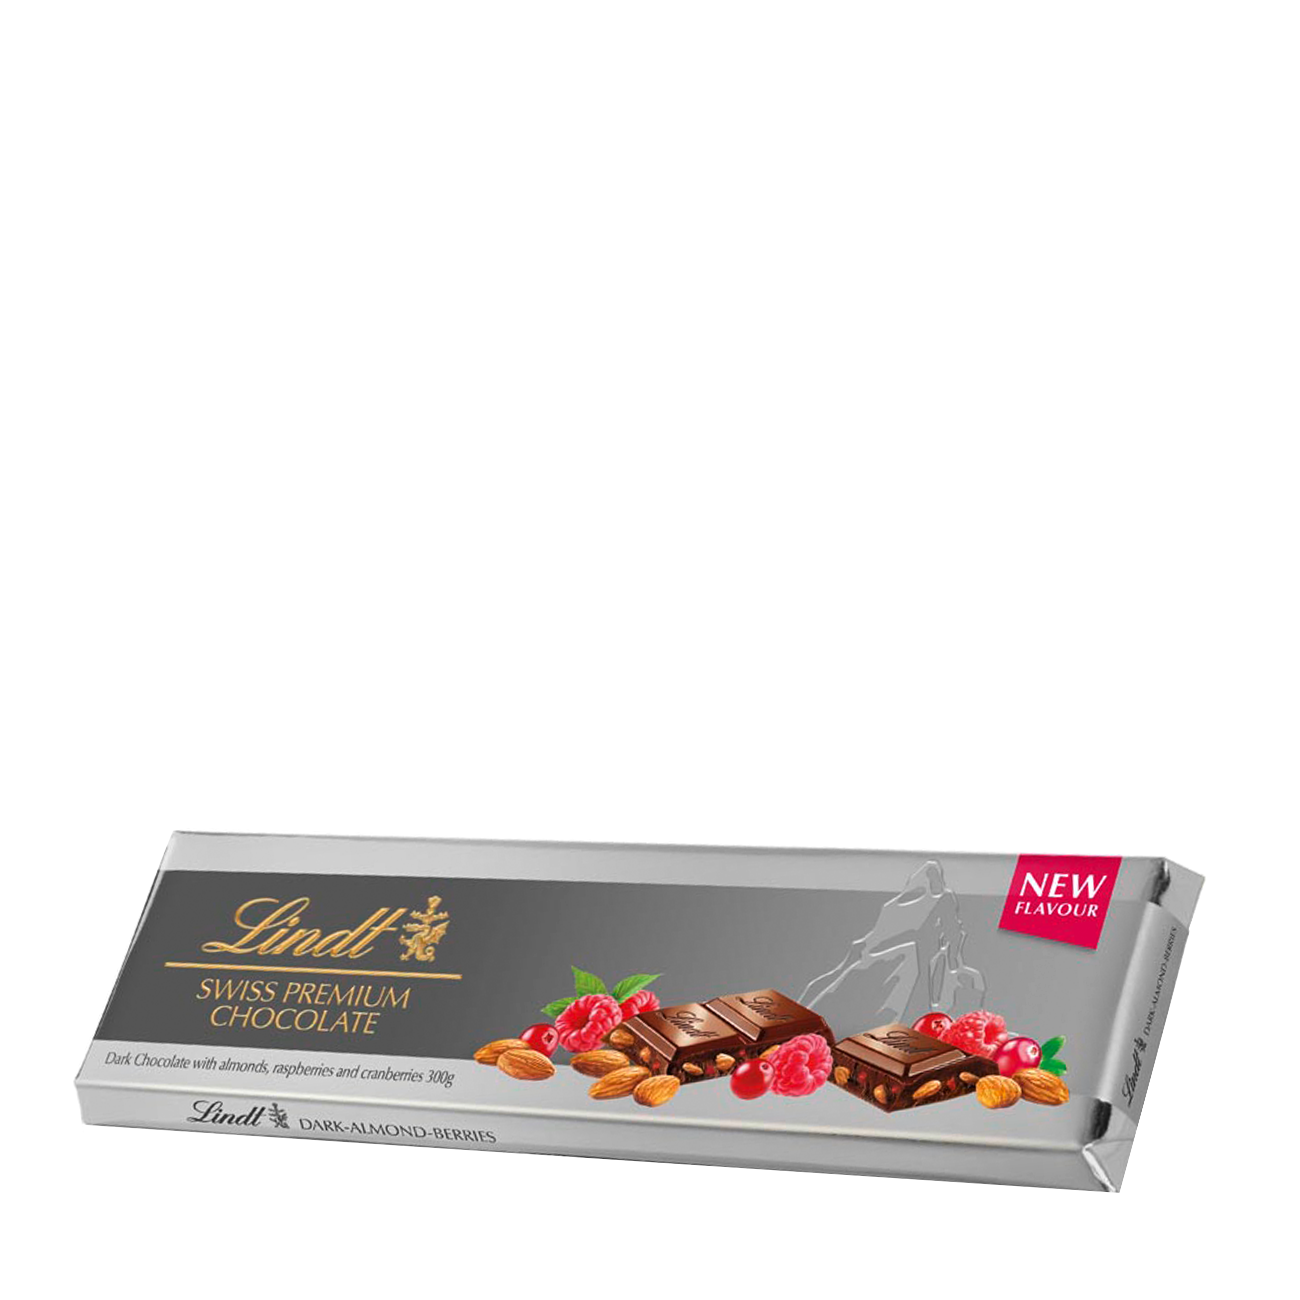 SILVER TABLET DARK CHOCOLATE WITH ALMONDS, RASPBERRIES AND CRANBERRIES 300gr